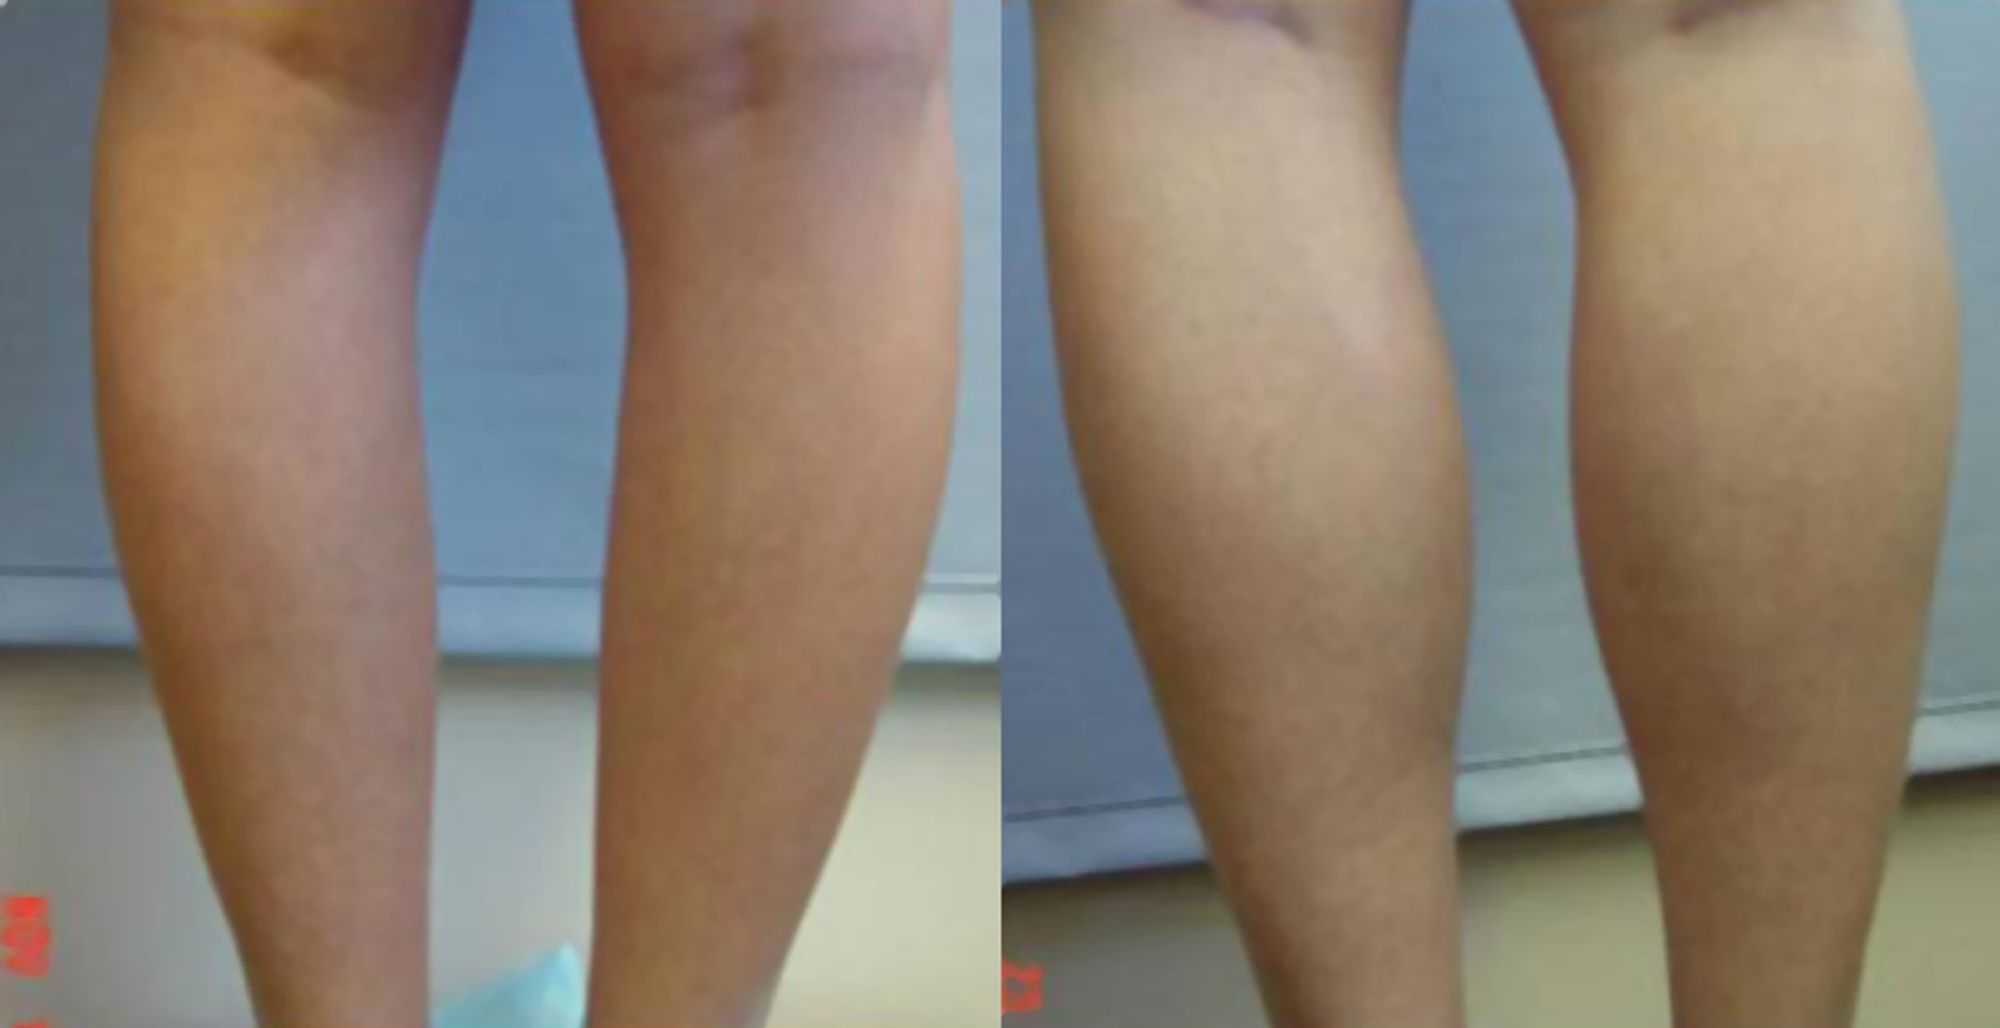 Calf muscle implants - Picture 1